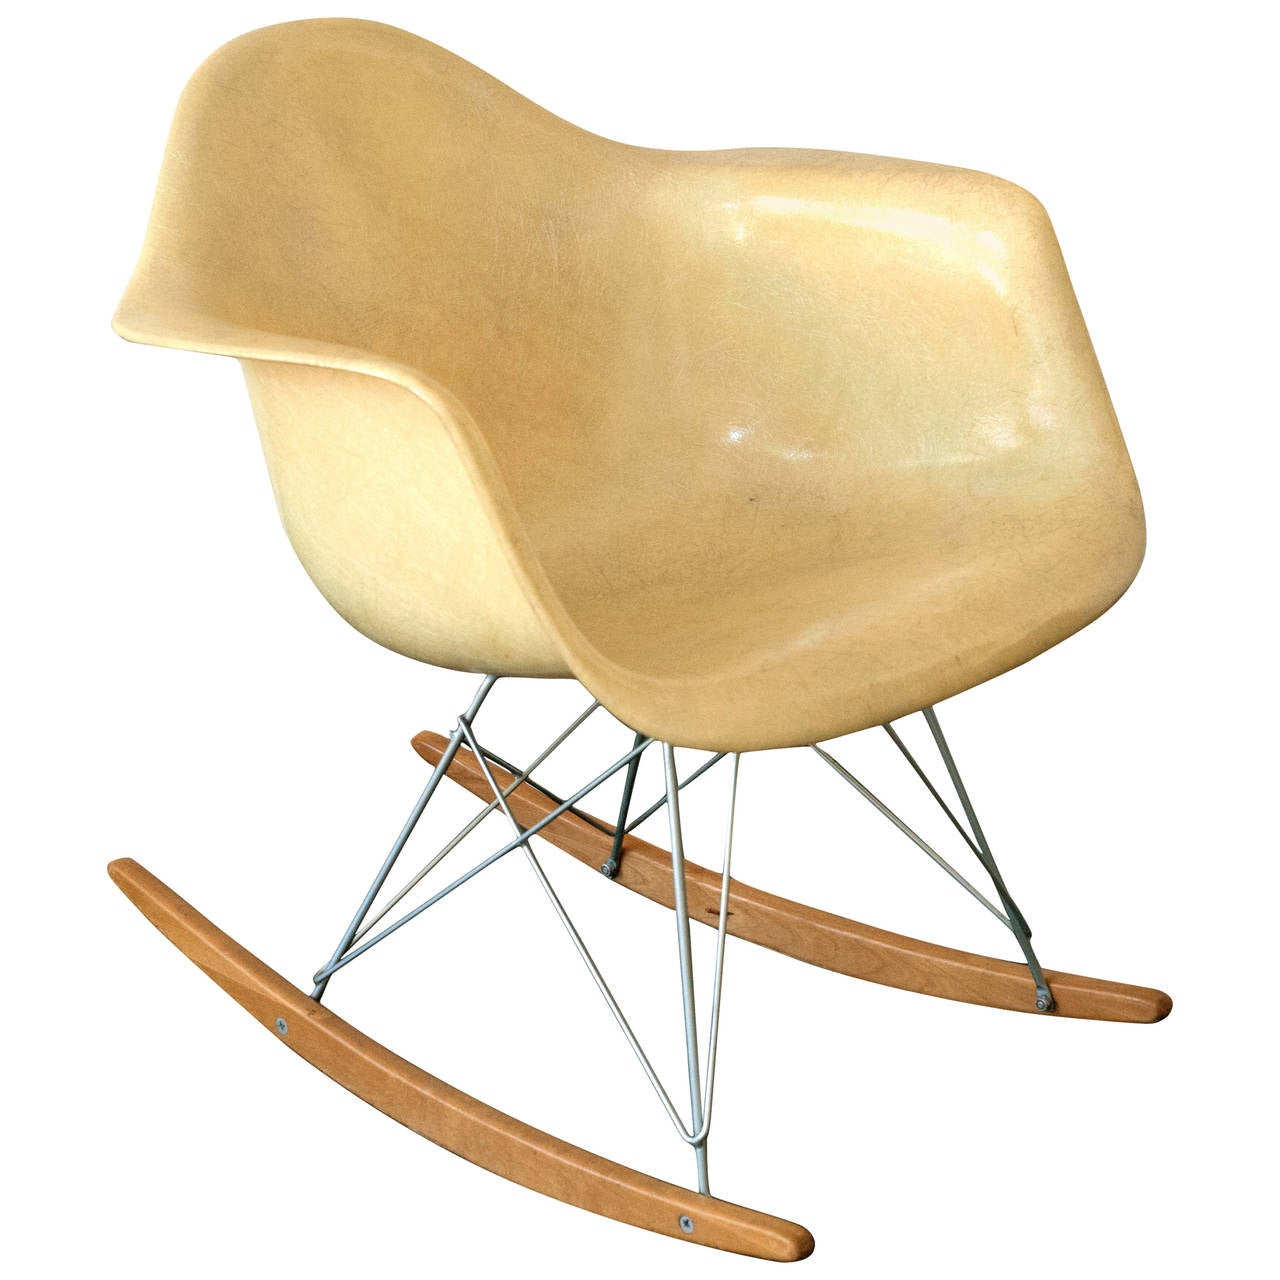 eames herman miller zenith rar rope edge rocking chair at 1stdibs. Black Bedroom Furniture Sets. Home Design Ideas